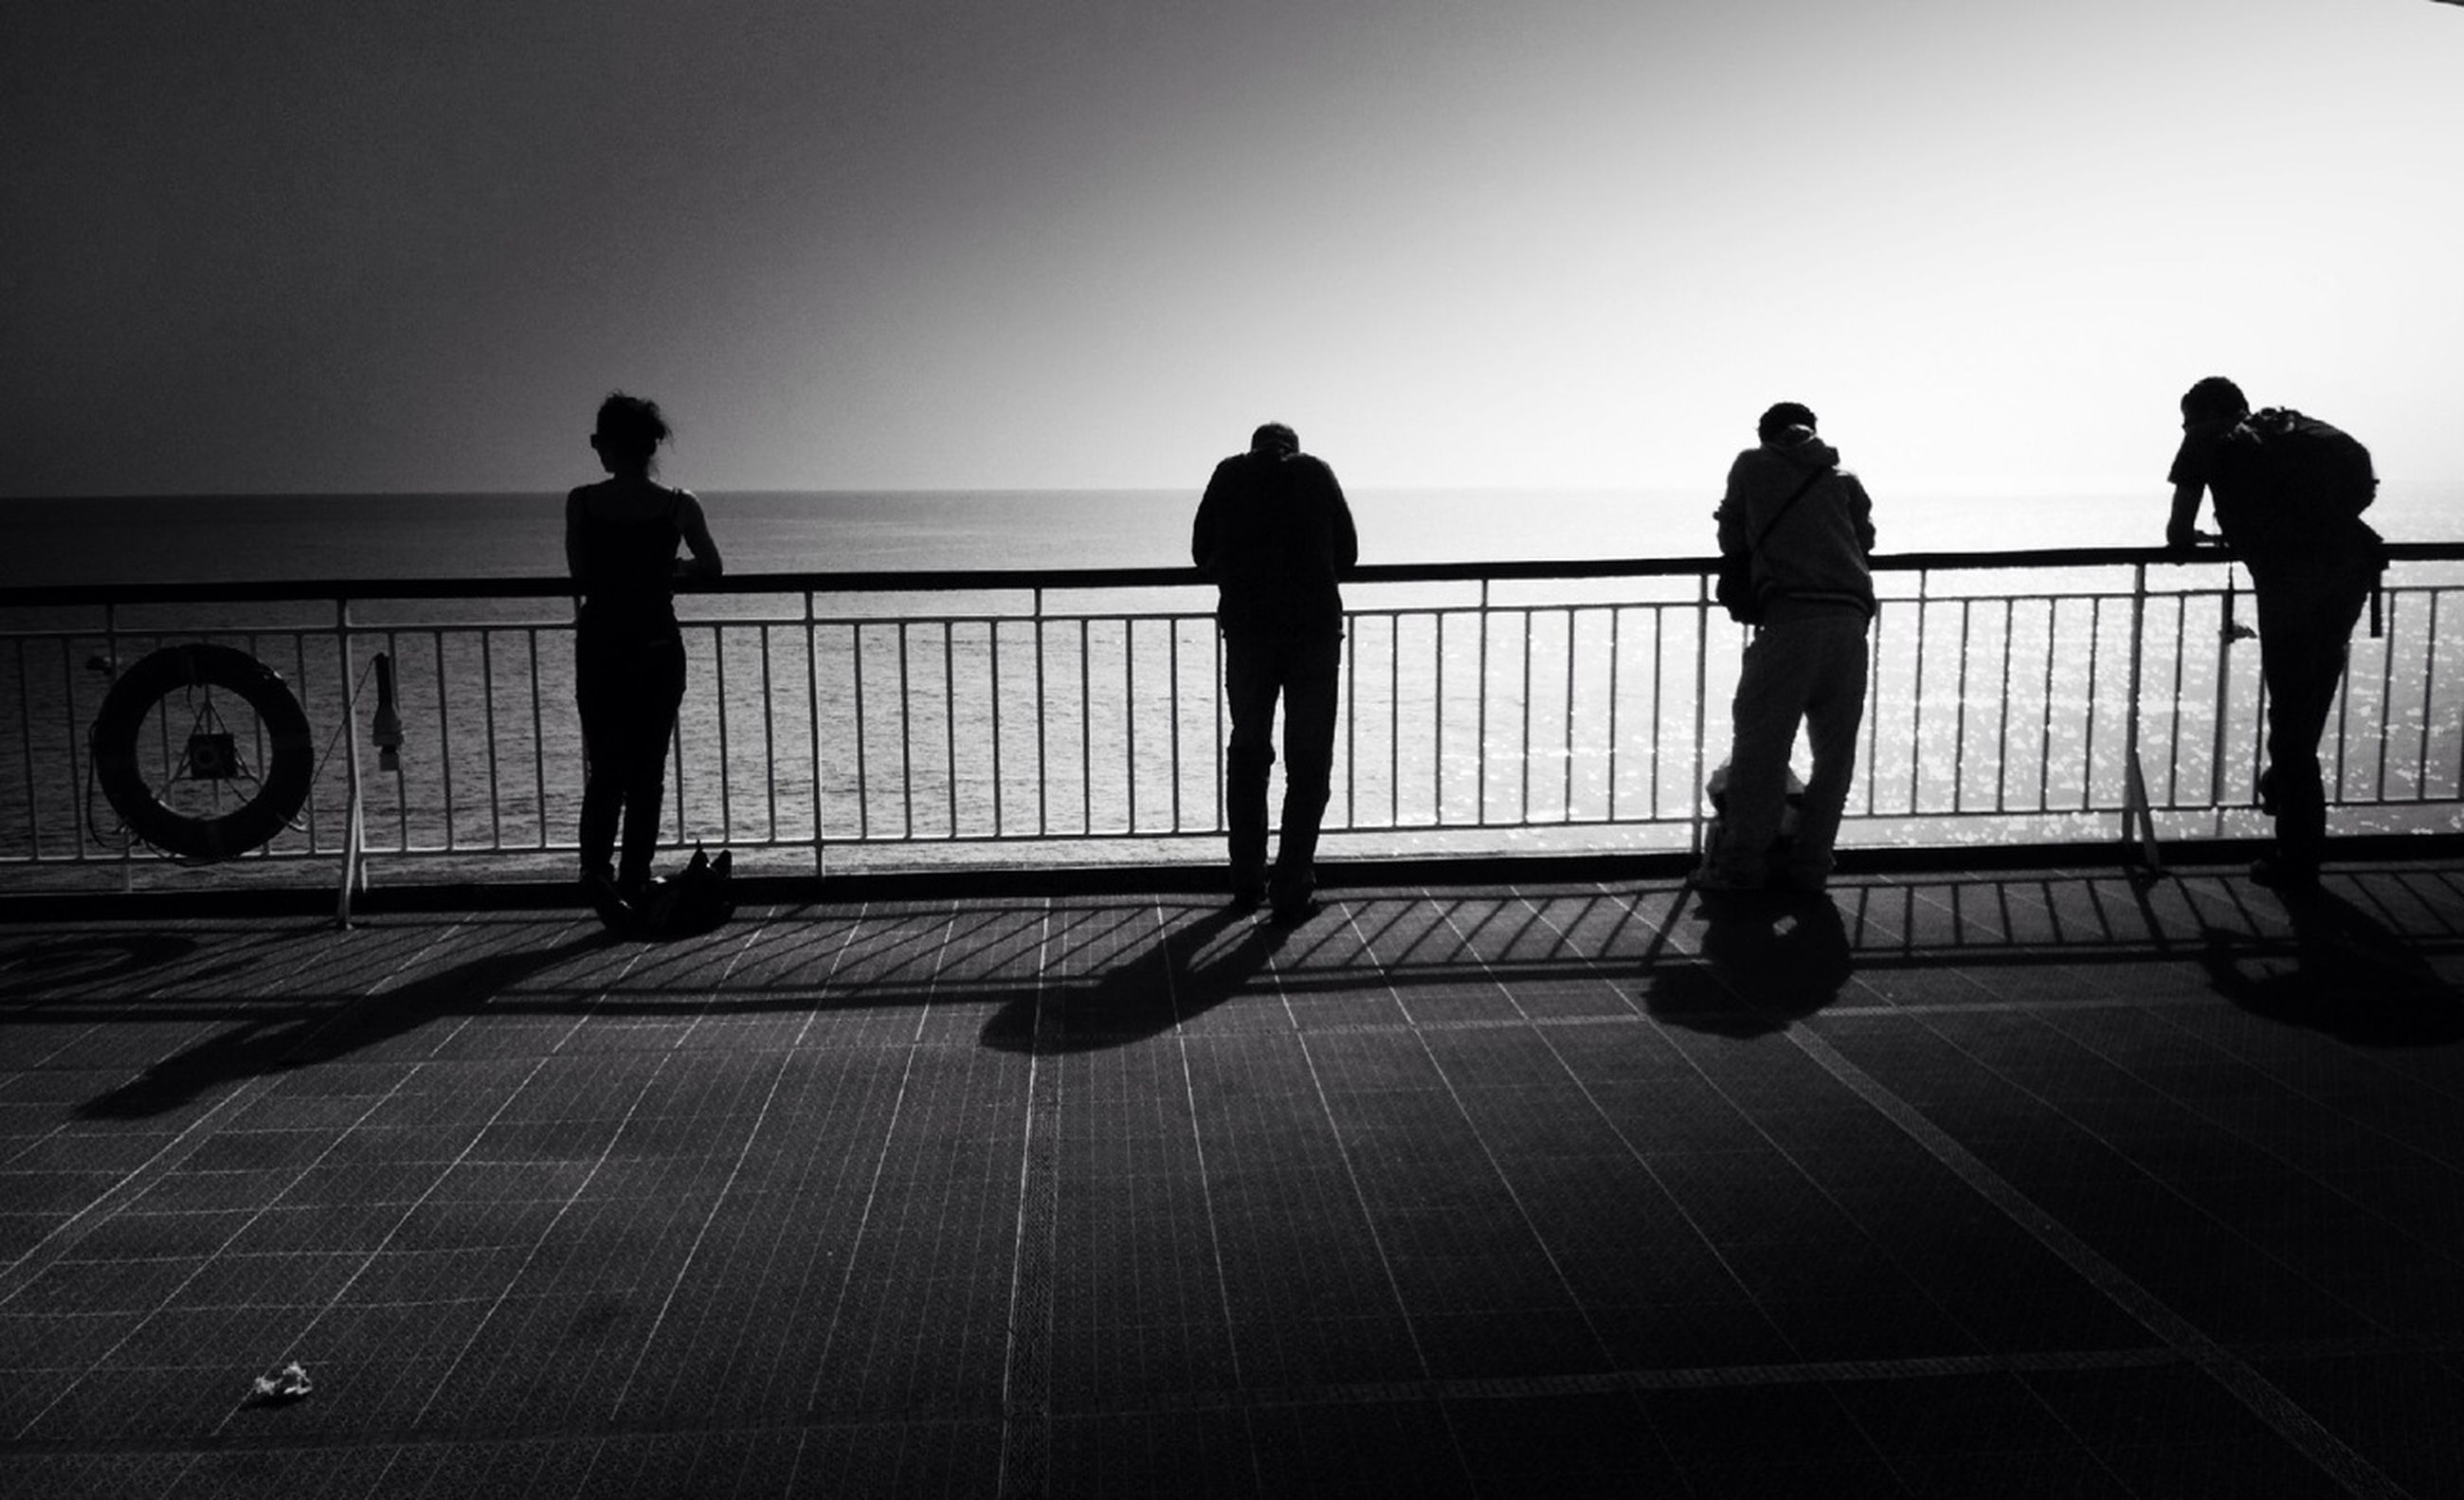 clear sky, men, walking, copy space, transportation, full length, lifestyles, person, silhouette, railing, leisure activity, horizon over water, standing, rear view, sea, shadow, city life, street, travel